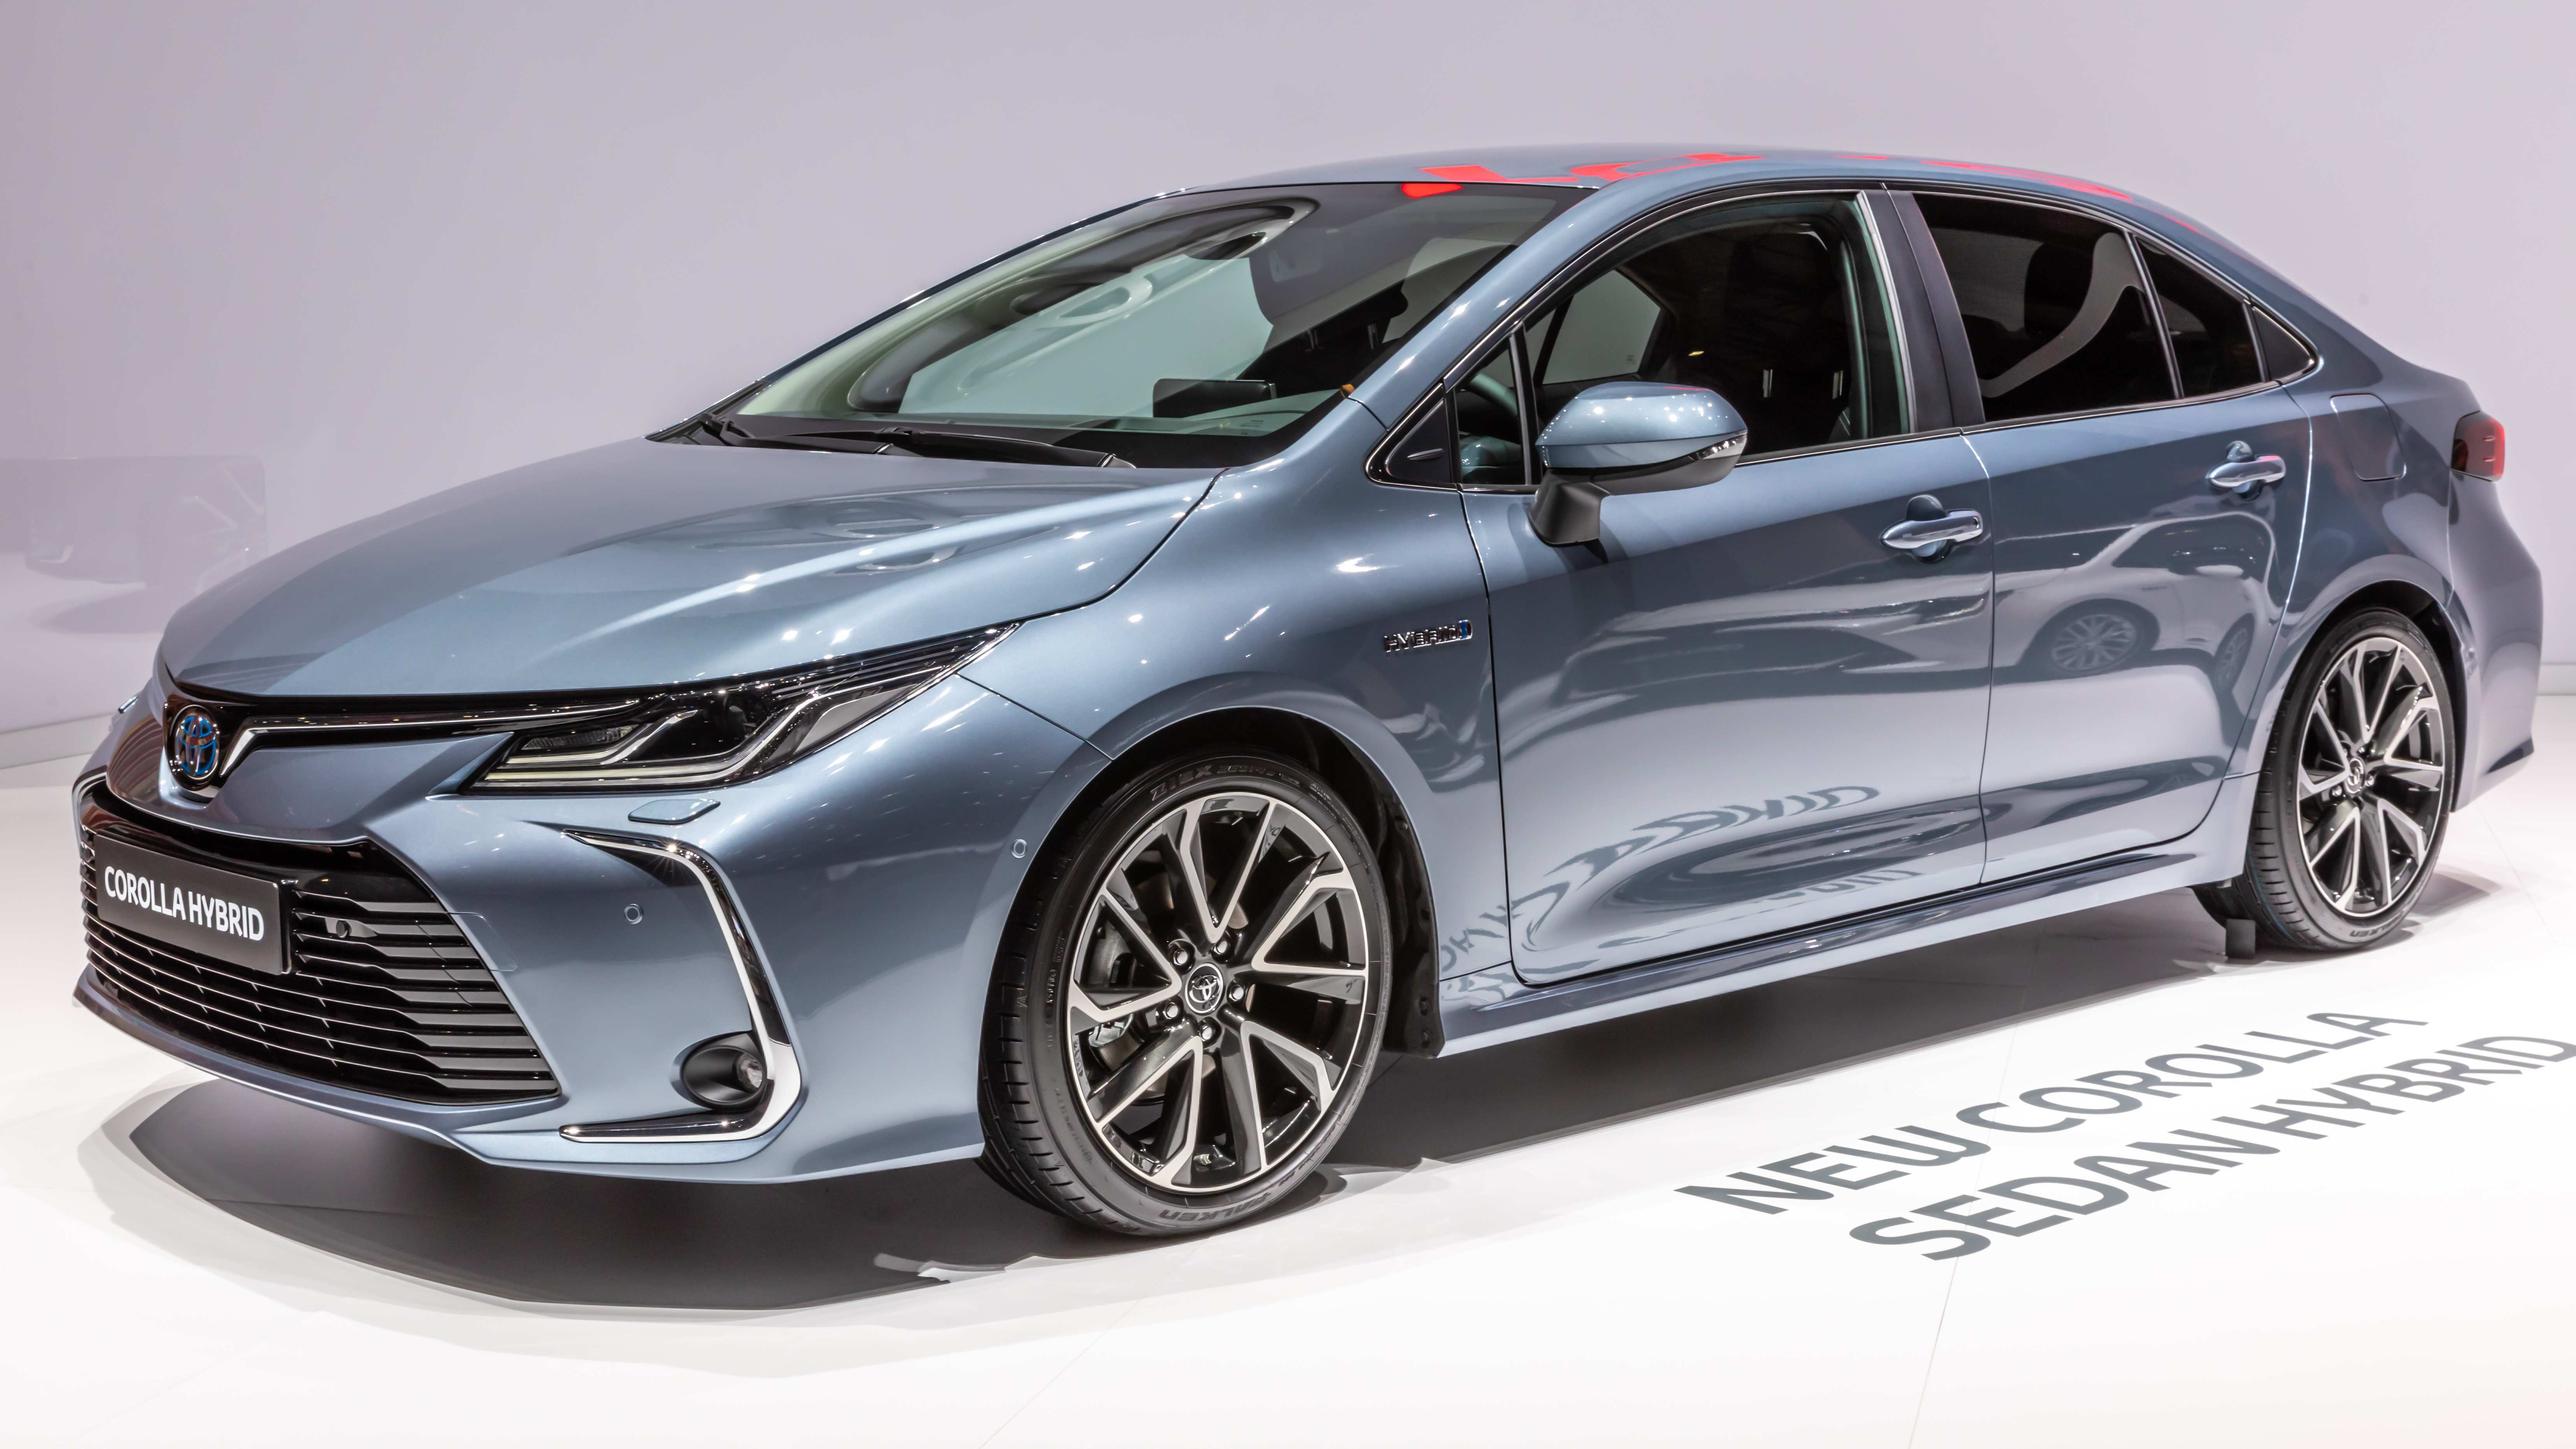 88 All New New Sedan Toyota 2019 Overview And Price Review for New Sedan Toyota 2019 Overview And Price